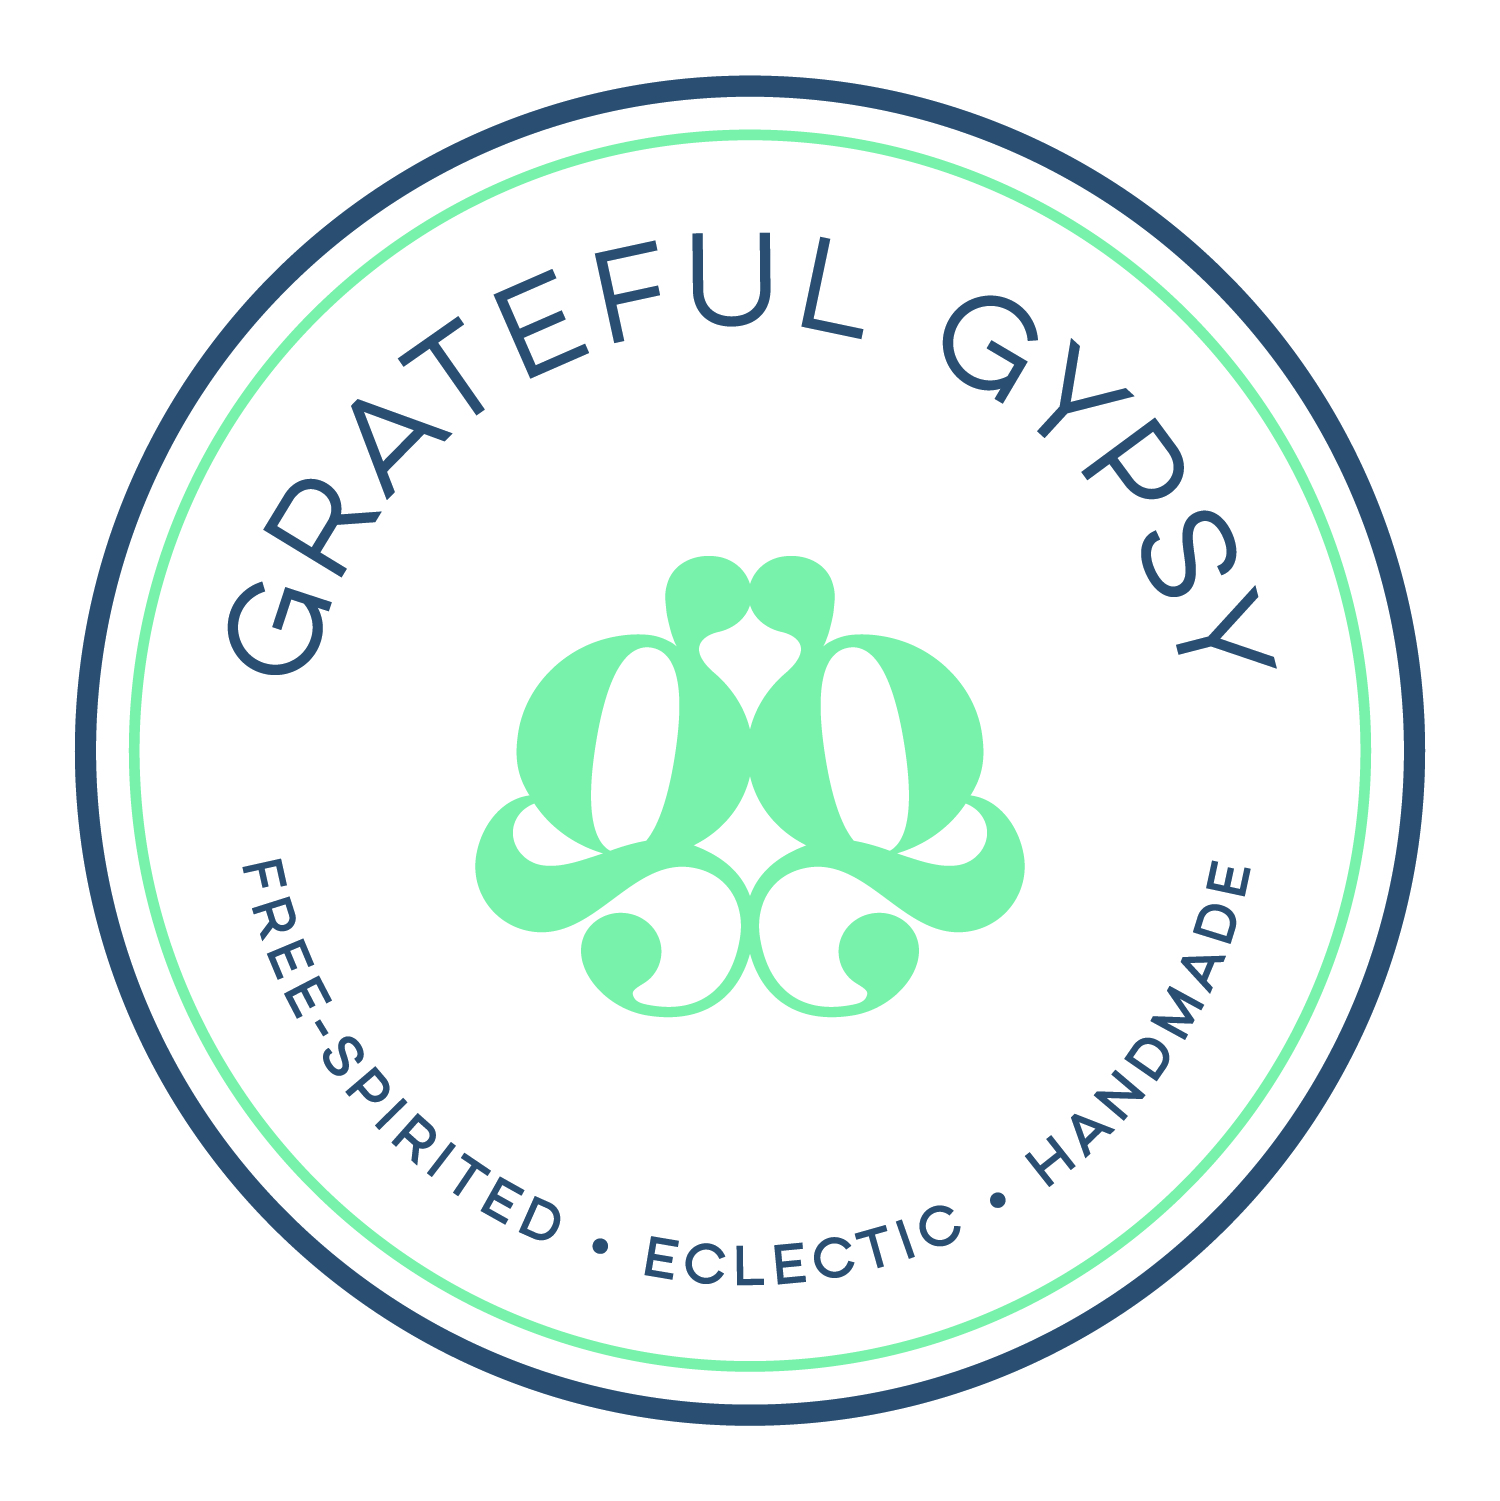 Grateful Gypsy Logo  |  Free-spirited, Eclectic, Handmade apparel with bohemian flair